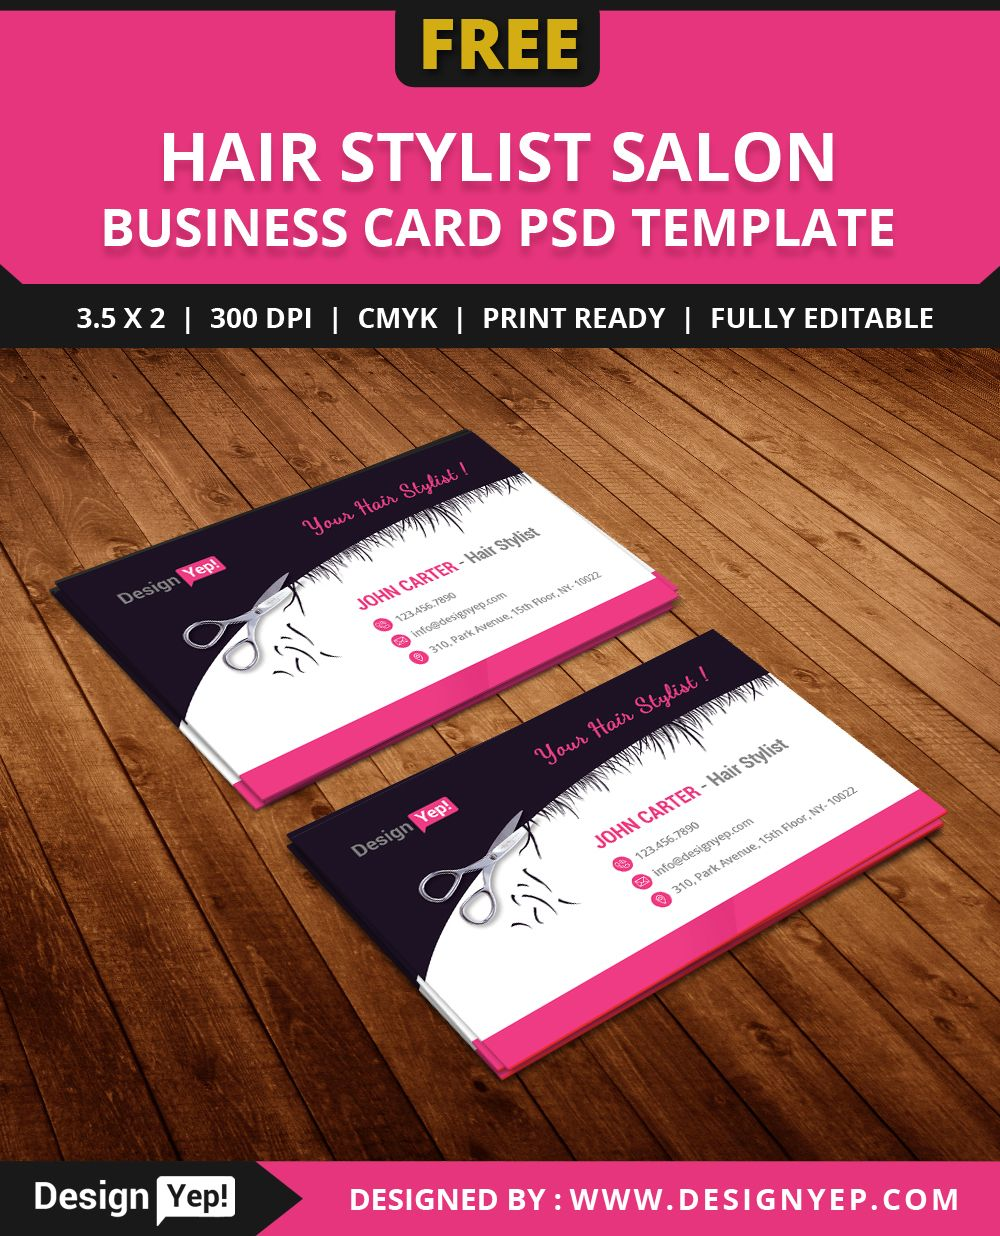 Free hair stylist salon business card template psd free business free hair stylist salon business card template psd wajeb Images